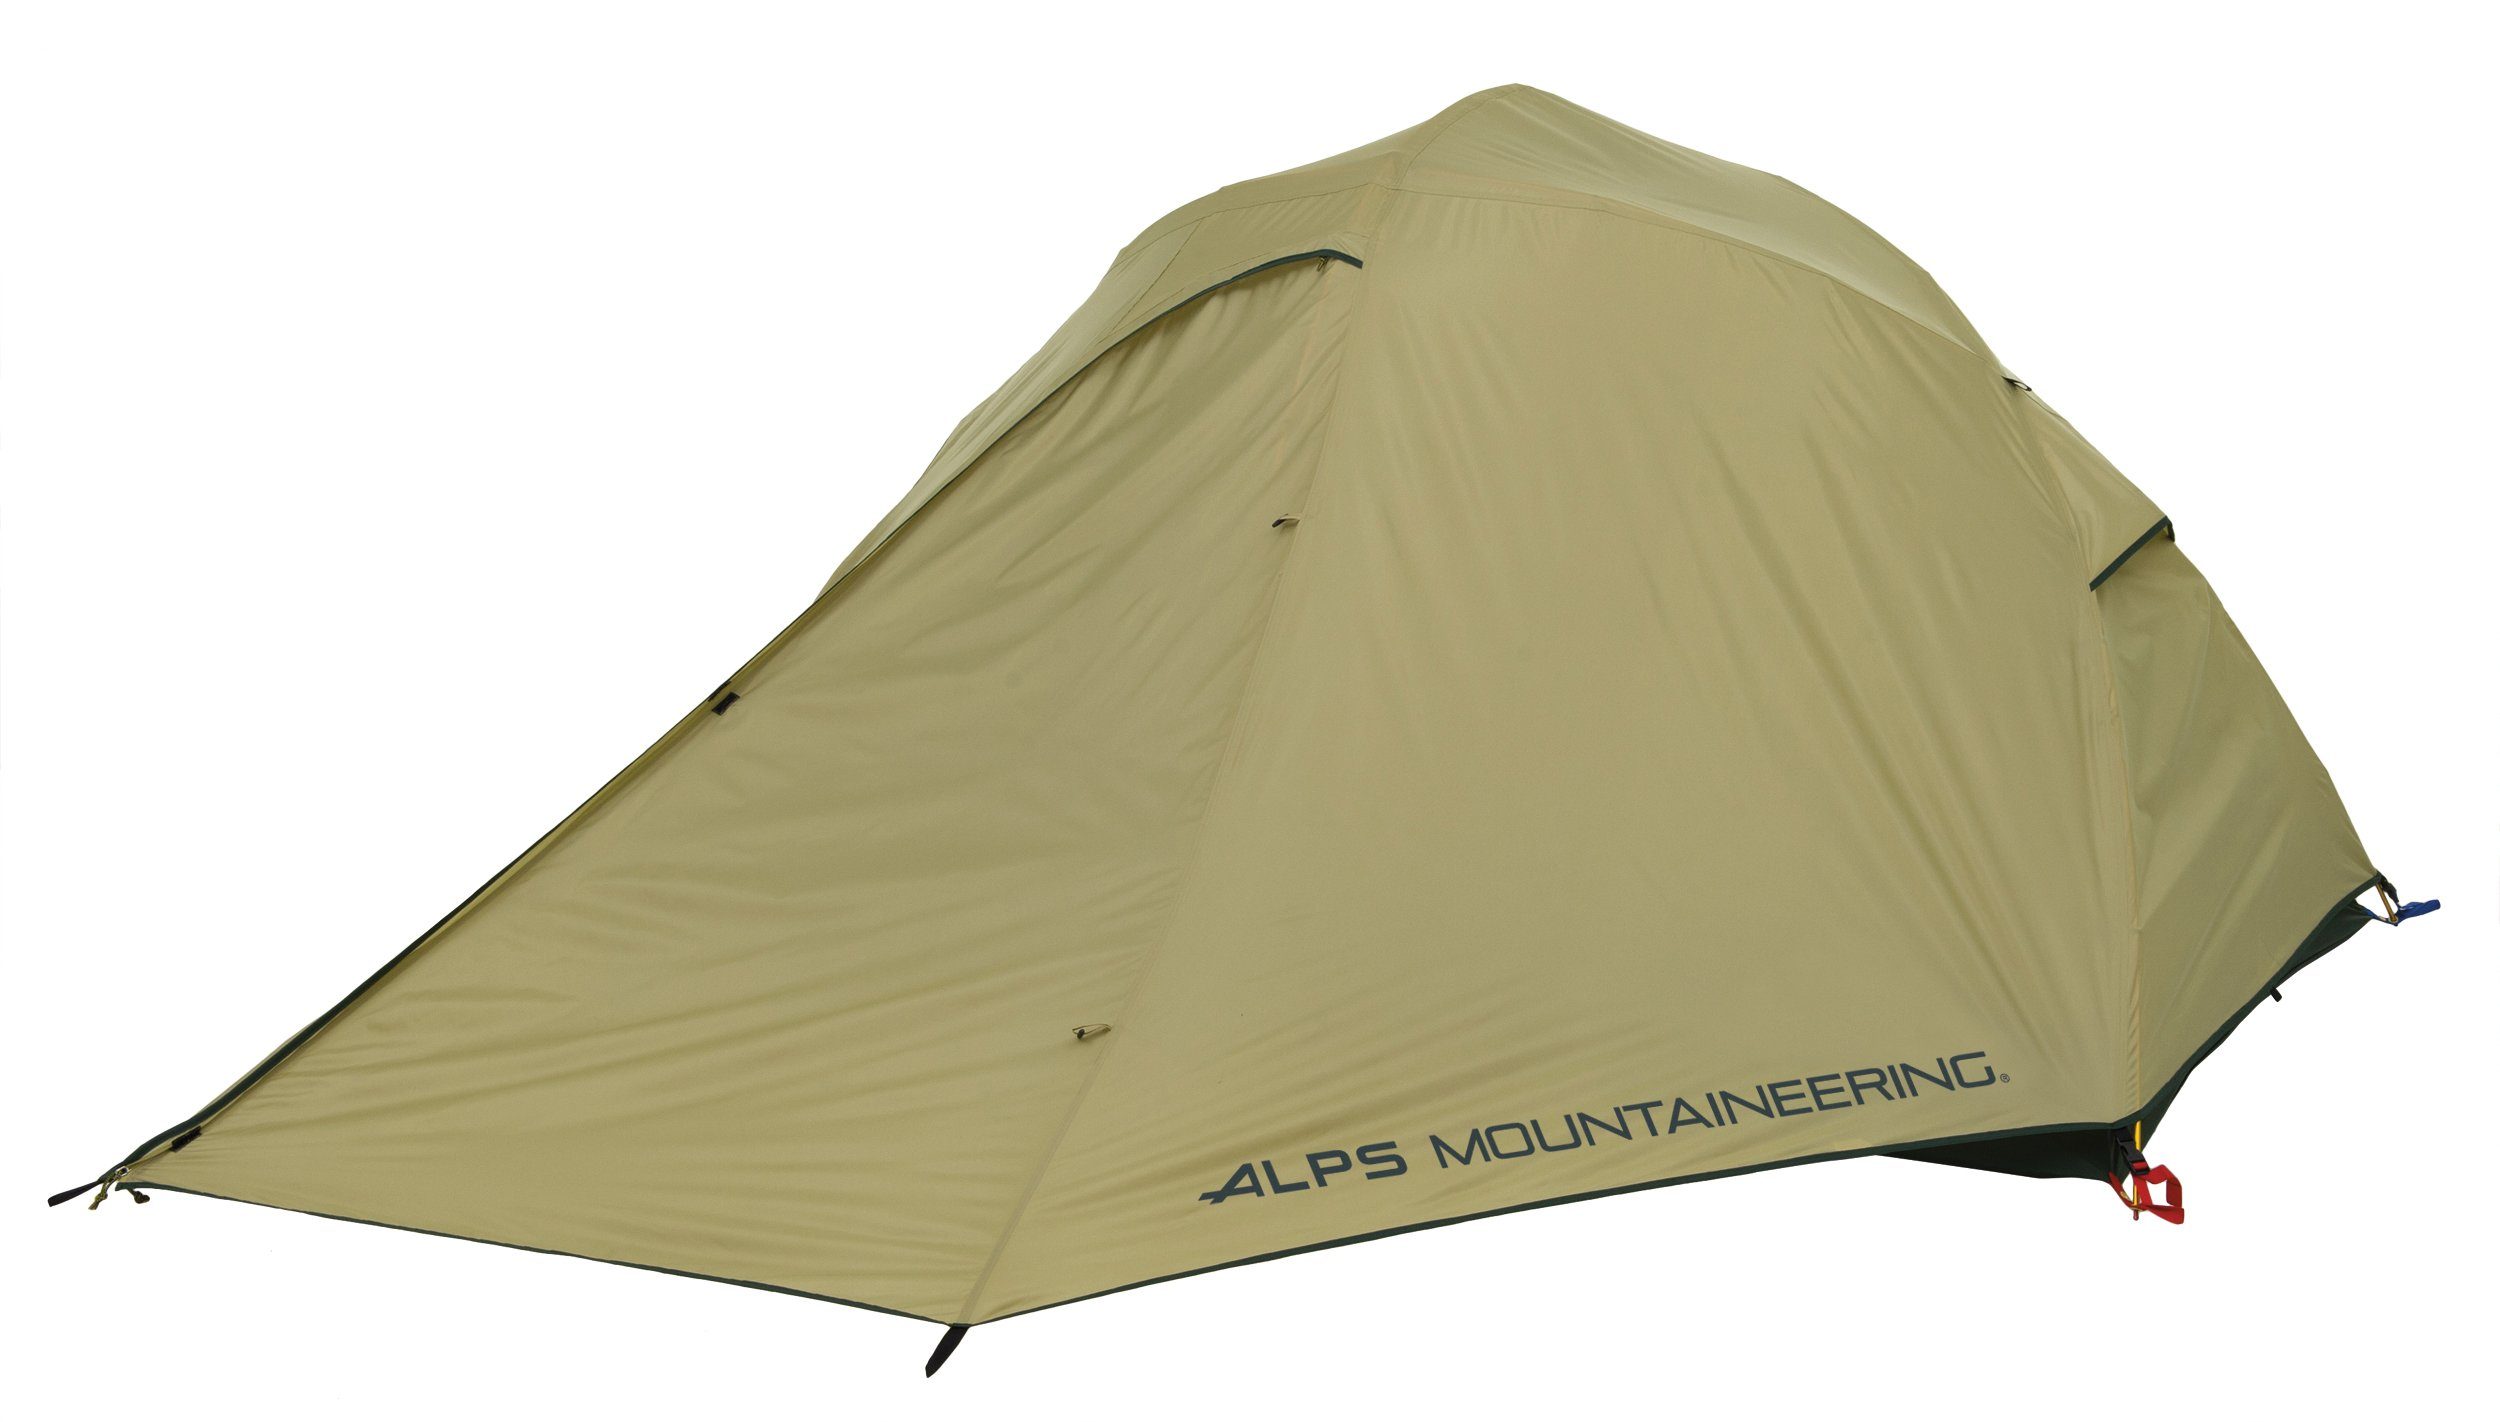 ALPS Mountaineering Extreme 3 Outfitter Tent by ALPS Mountaineering